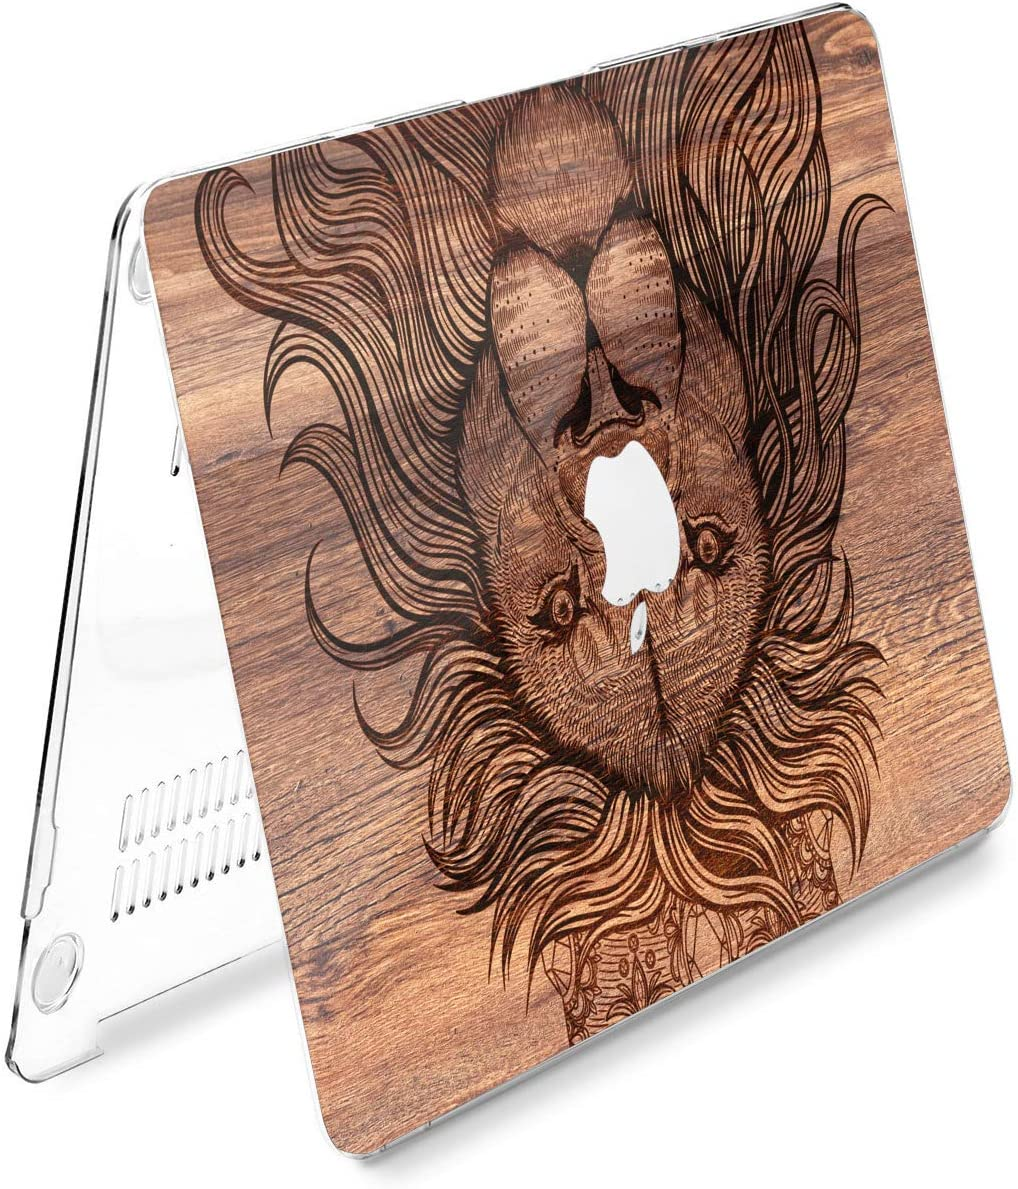 Cavka Hard Shell Case for Apple MacBook Pro 13 2019 15 2018 Air 13 2020 Retina 2015 Mac 11 Mac 12 Nature Tree Design Forest Wood Mountain Protective Laptop Grain Texture New Cover Print Plastic